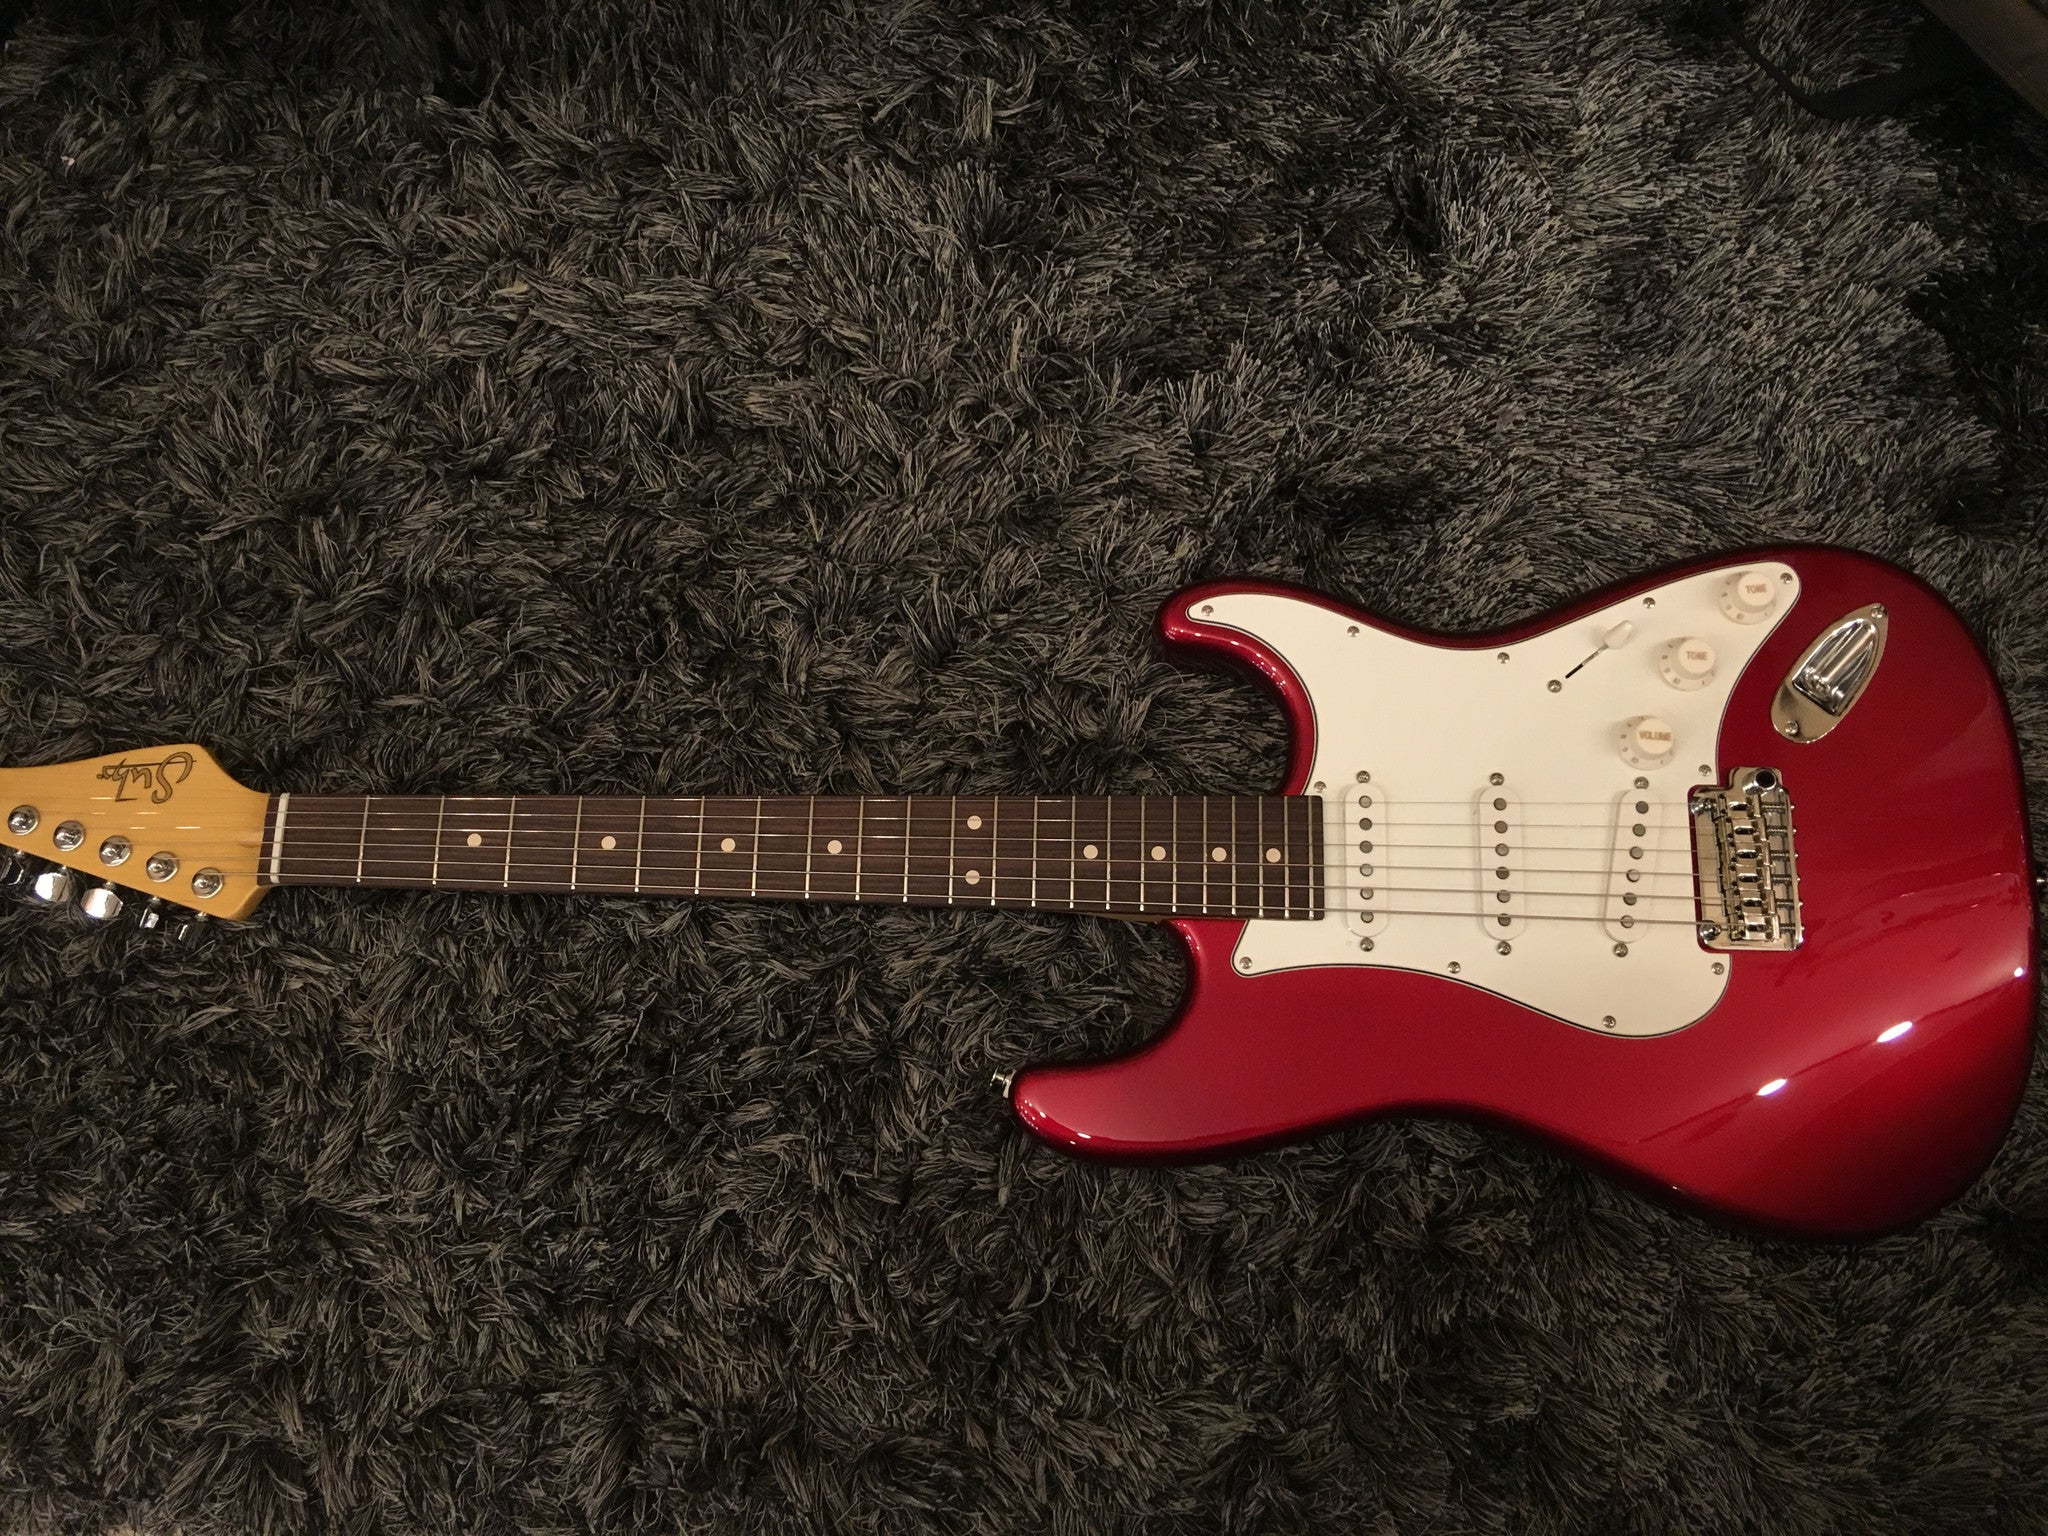 Suhr classic pro candy apple red SSS rosewood SUHR - HIENDGUITAR.COM